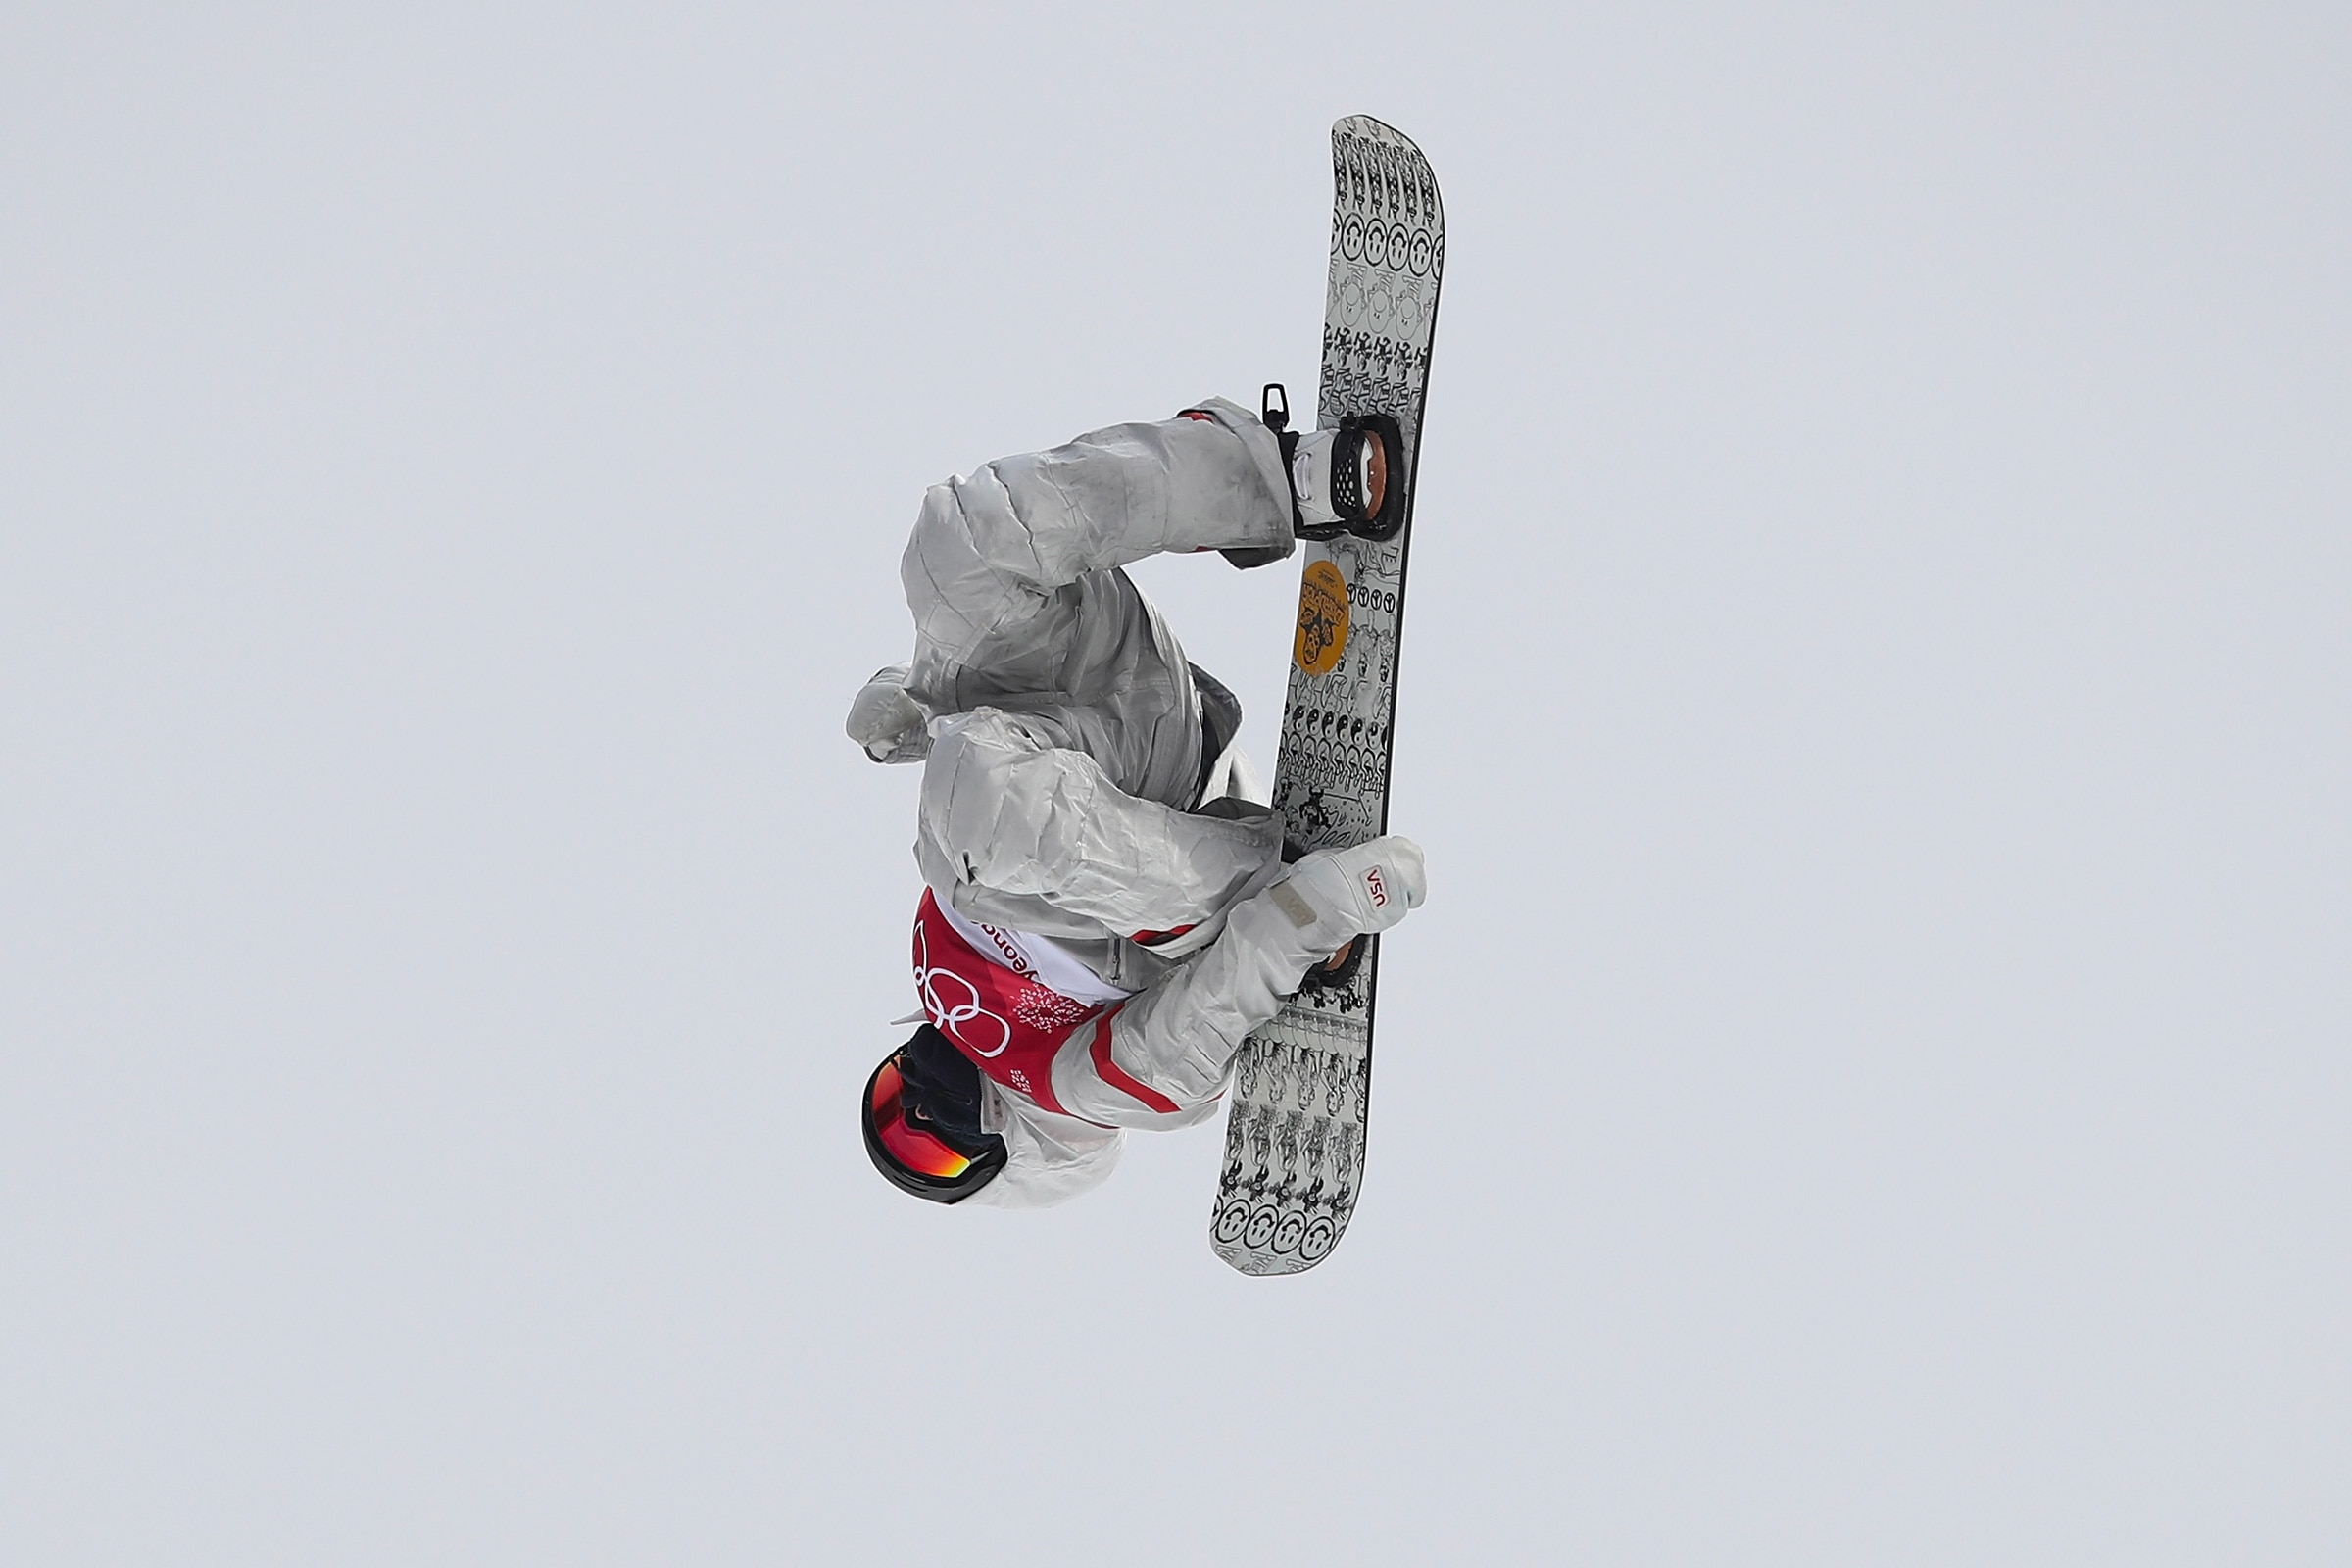 Snowboard - Big Air hommes